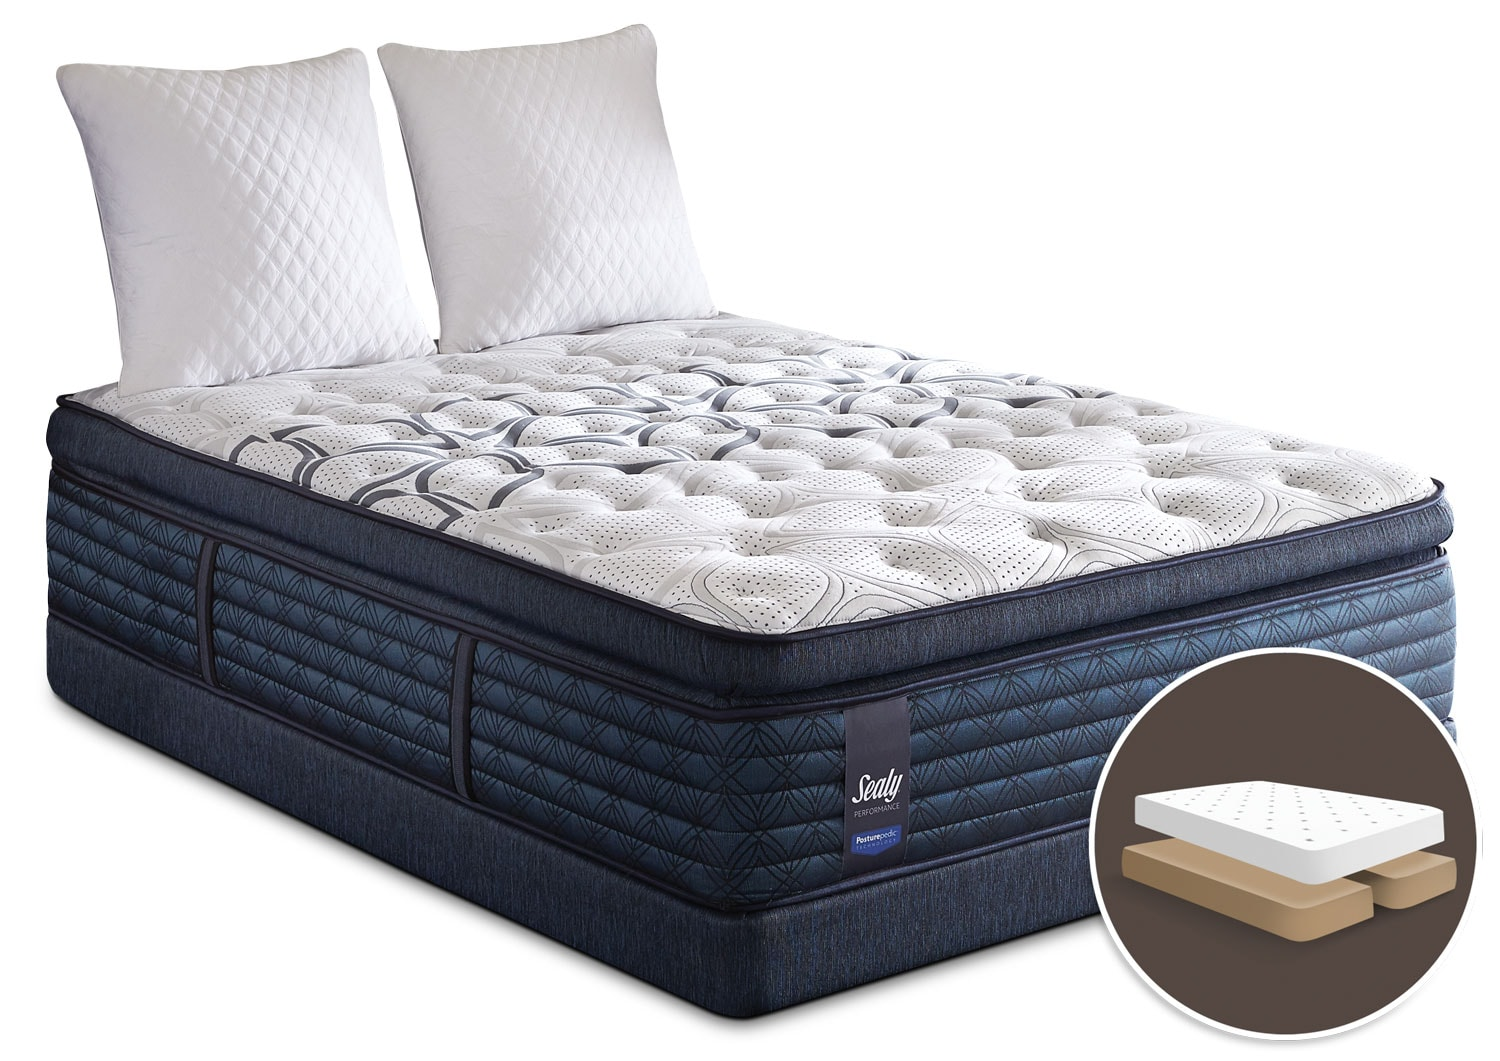 Mattresses and Bedding - Sealy ProBack Cantania Euro Pillow-Top Plush Split Queen Mattress Set